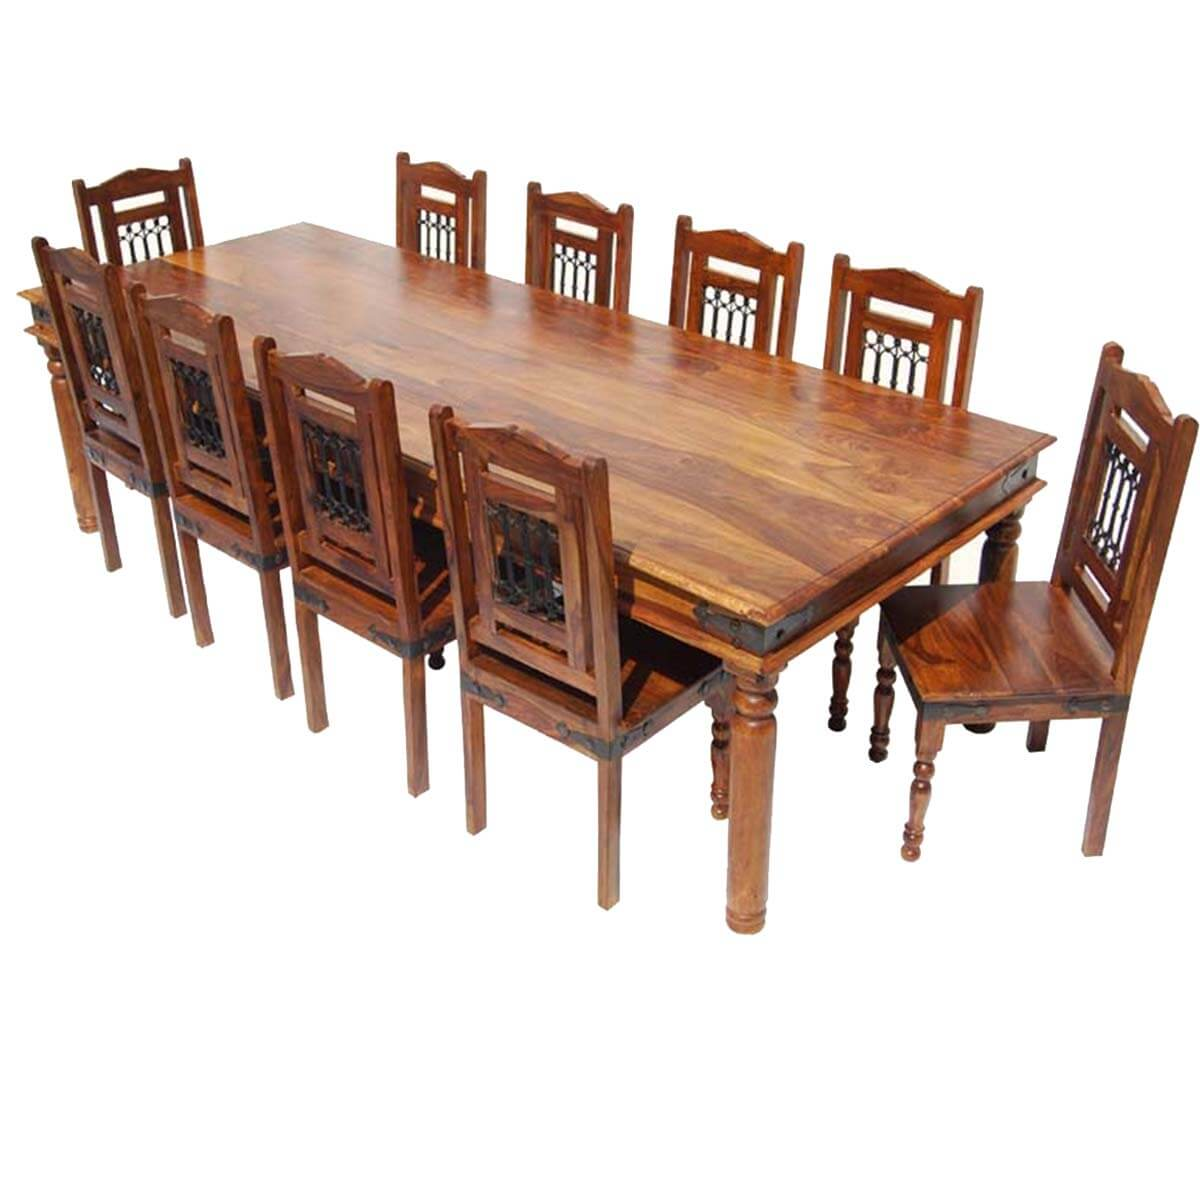 Solid wood large rustic dining room table chair sideboard set for Oak dining room table chairs